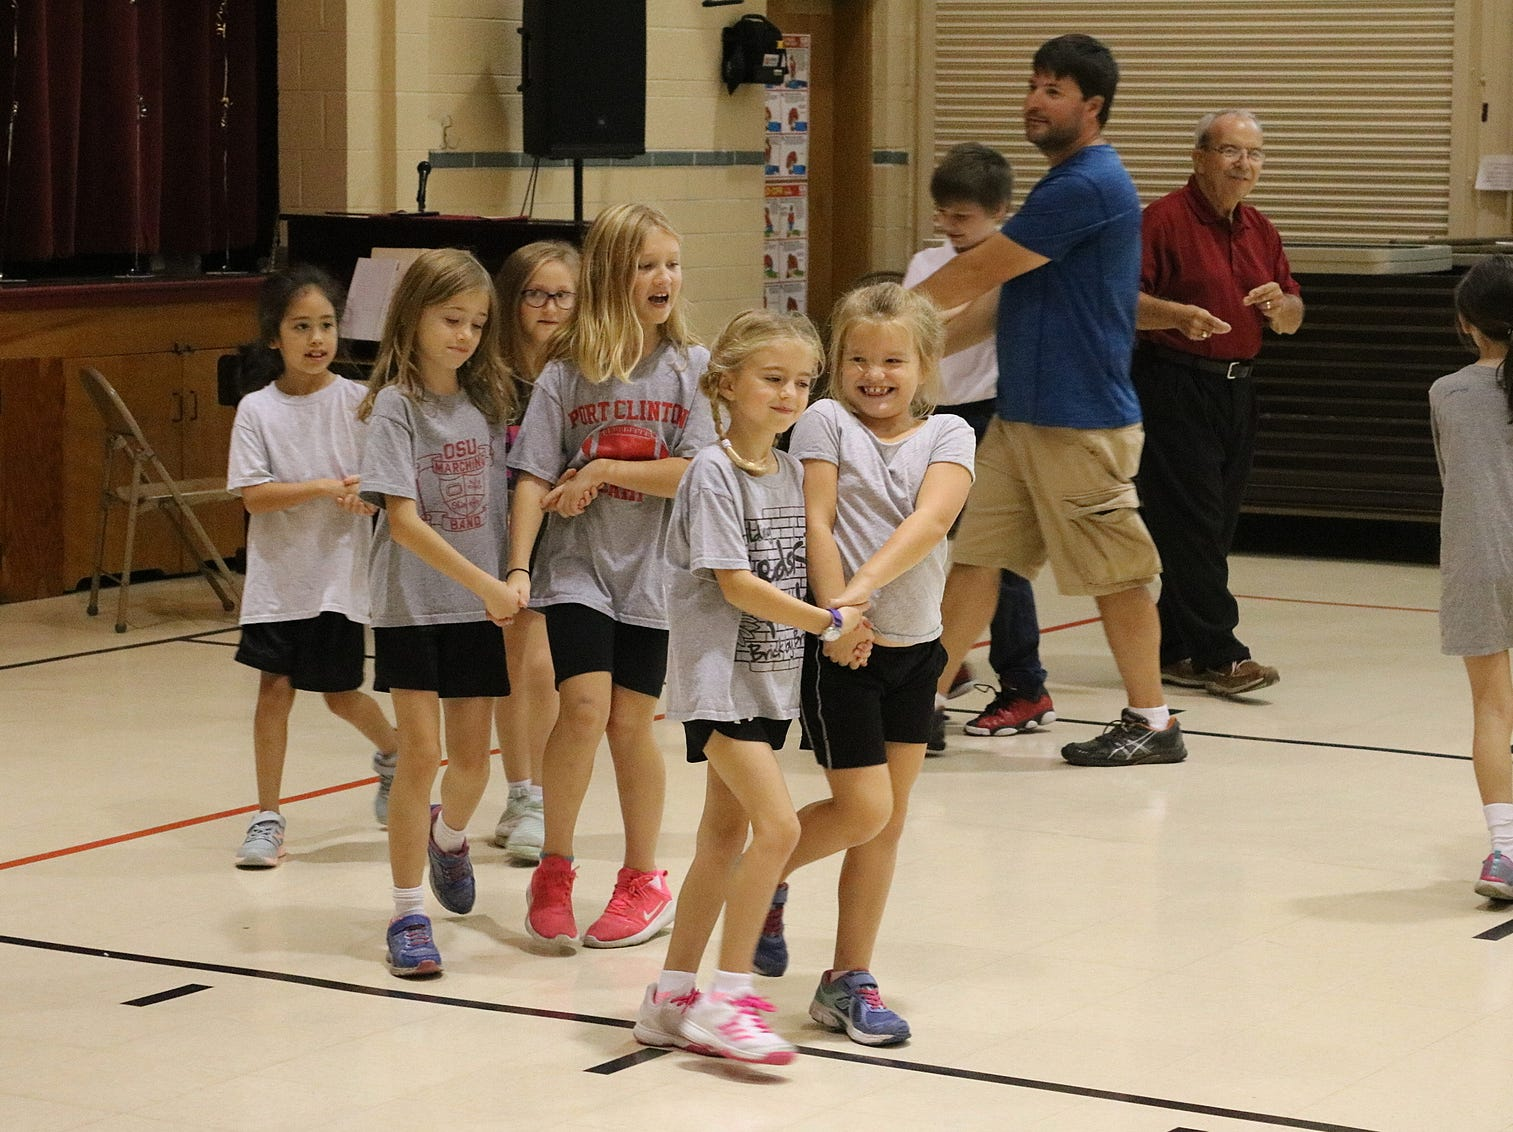 On Wednesday, students at Immaculate Conception School began to learn square dancing in preparation for the Boots and Buckles Pig Roast and Square Dance on Oct. 20.